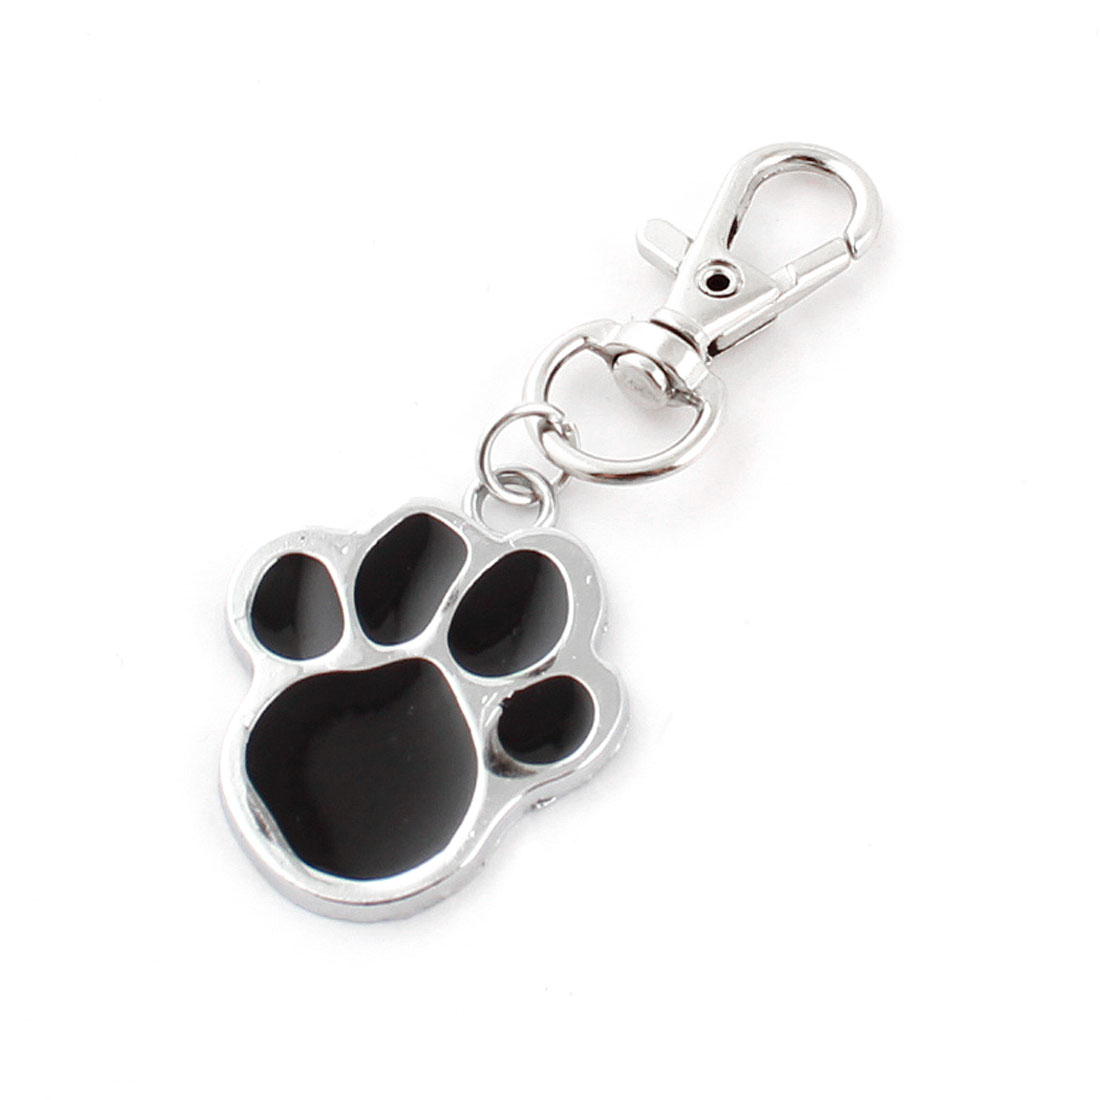 Metal Pawprint Shape Lobster Clasp Pendant Pet Cat Dog Collar ID Tag Black